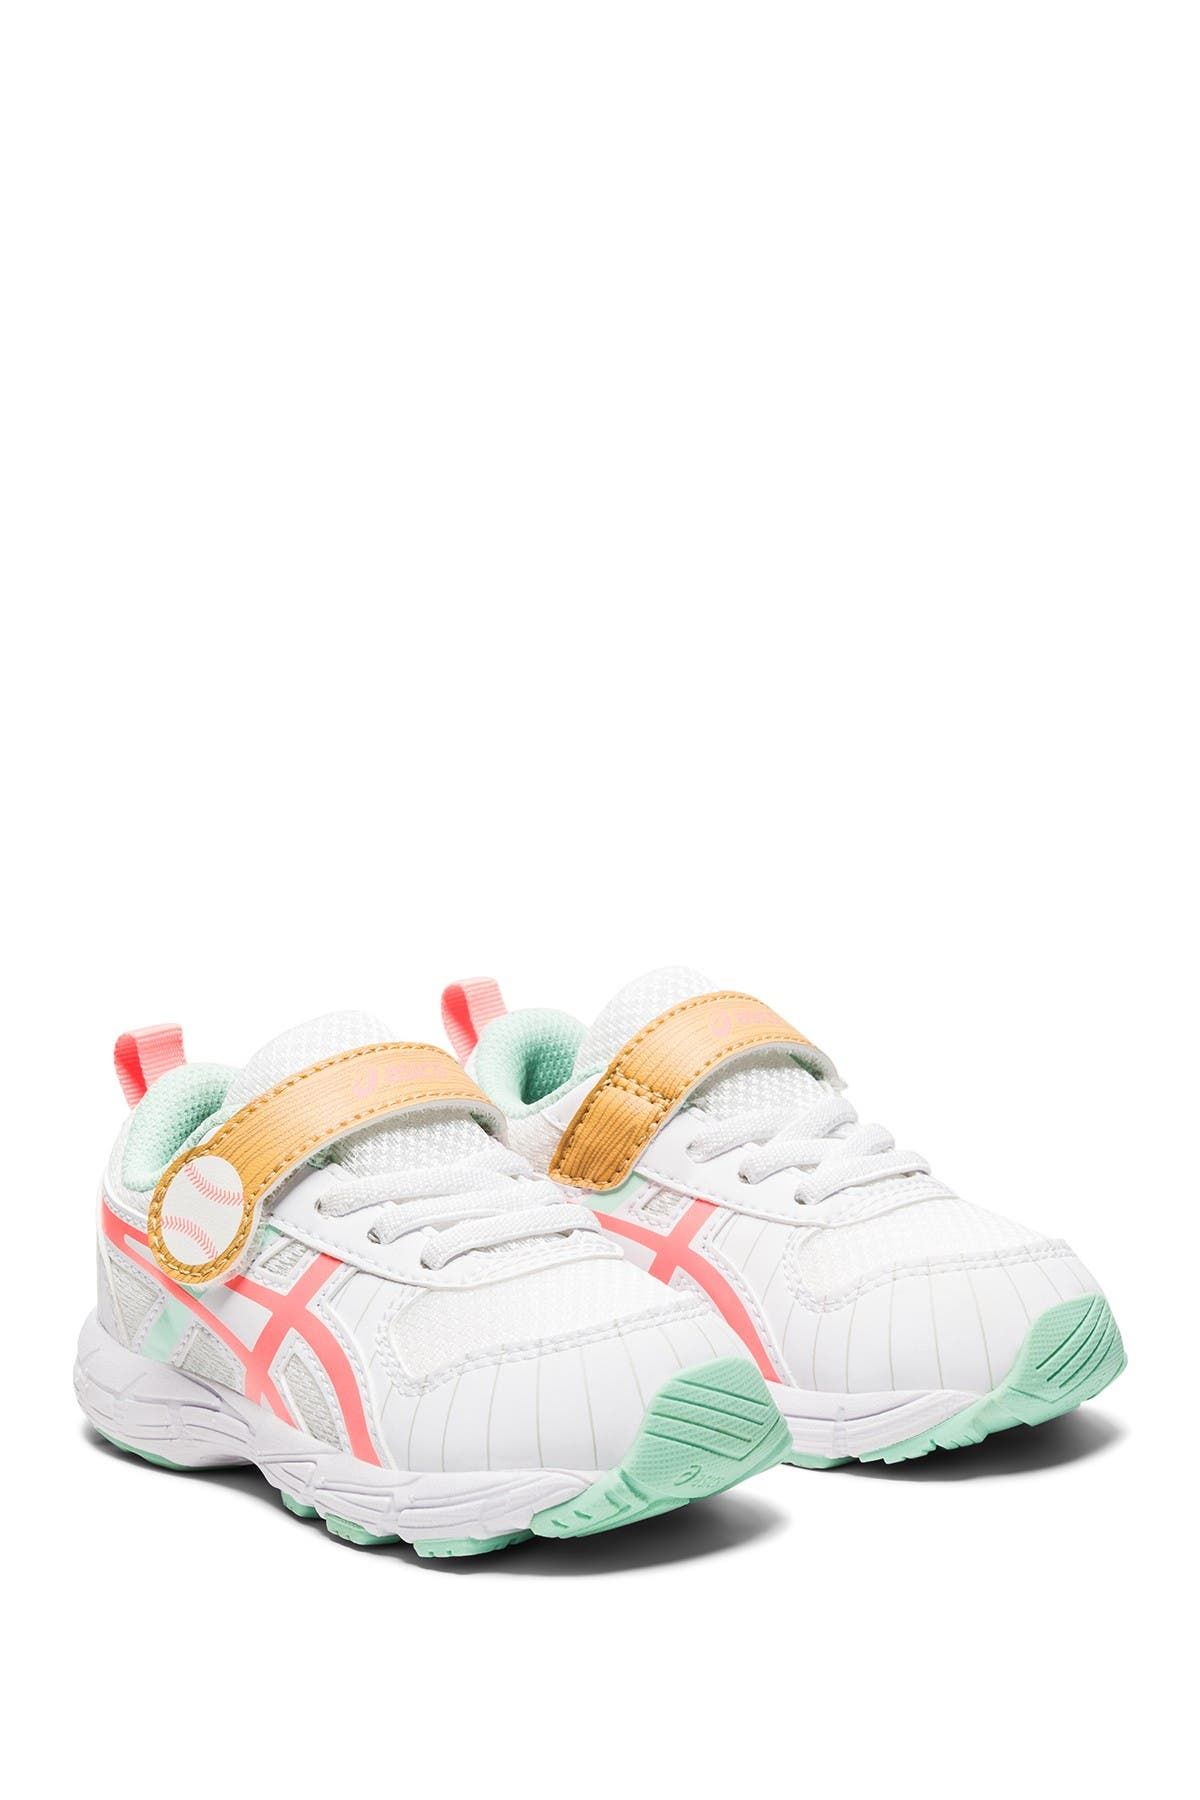 Image of ASICS Contend 6 Sneaker